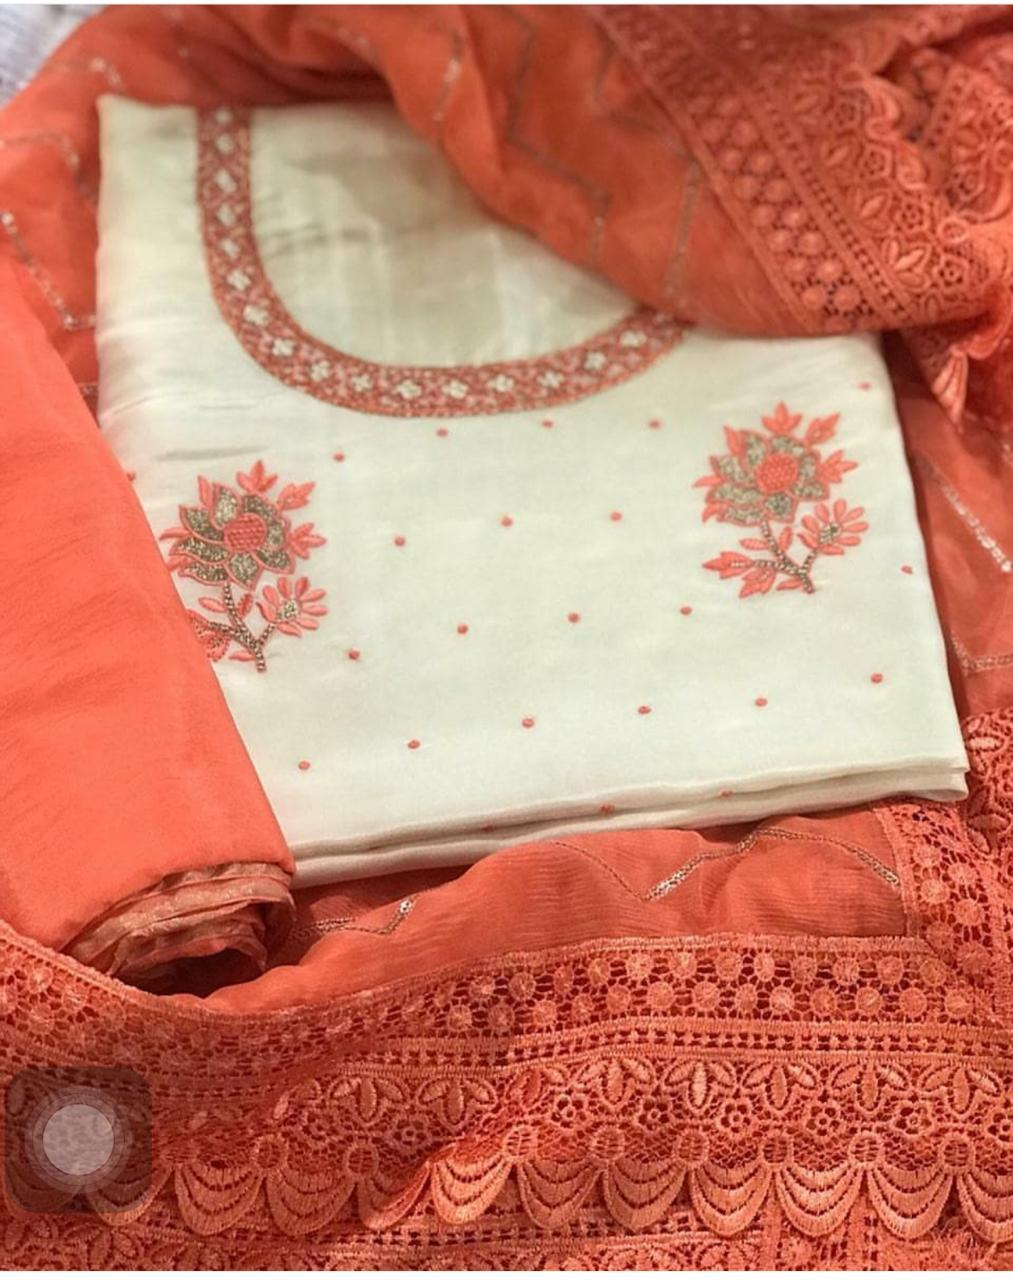 Embroidered Cotton Dress Material Off 54 Www Abrafiltros Org Br